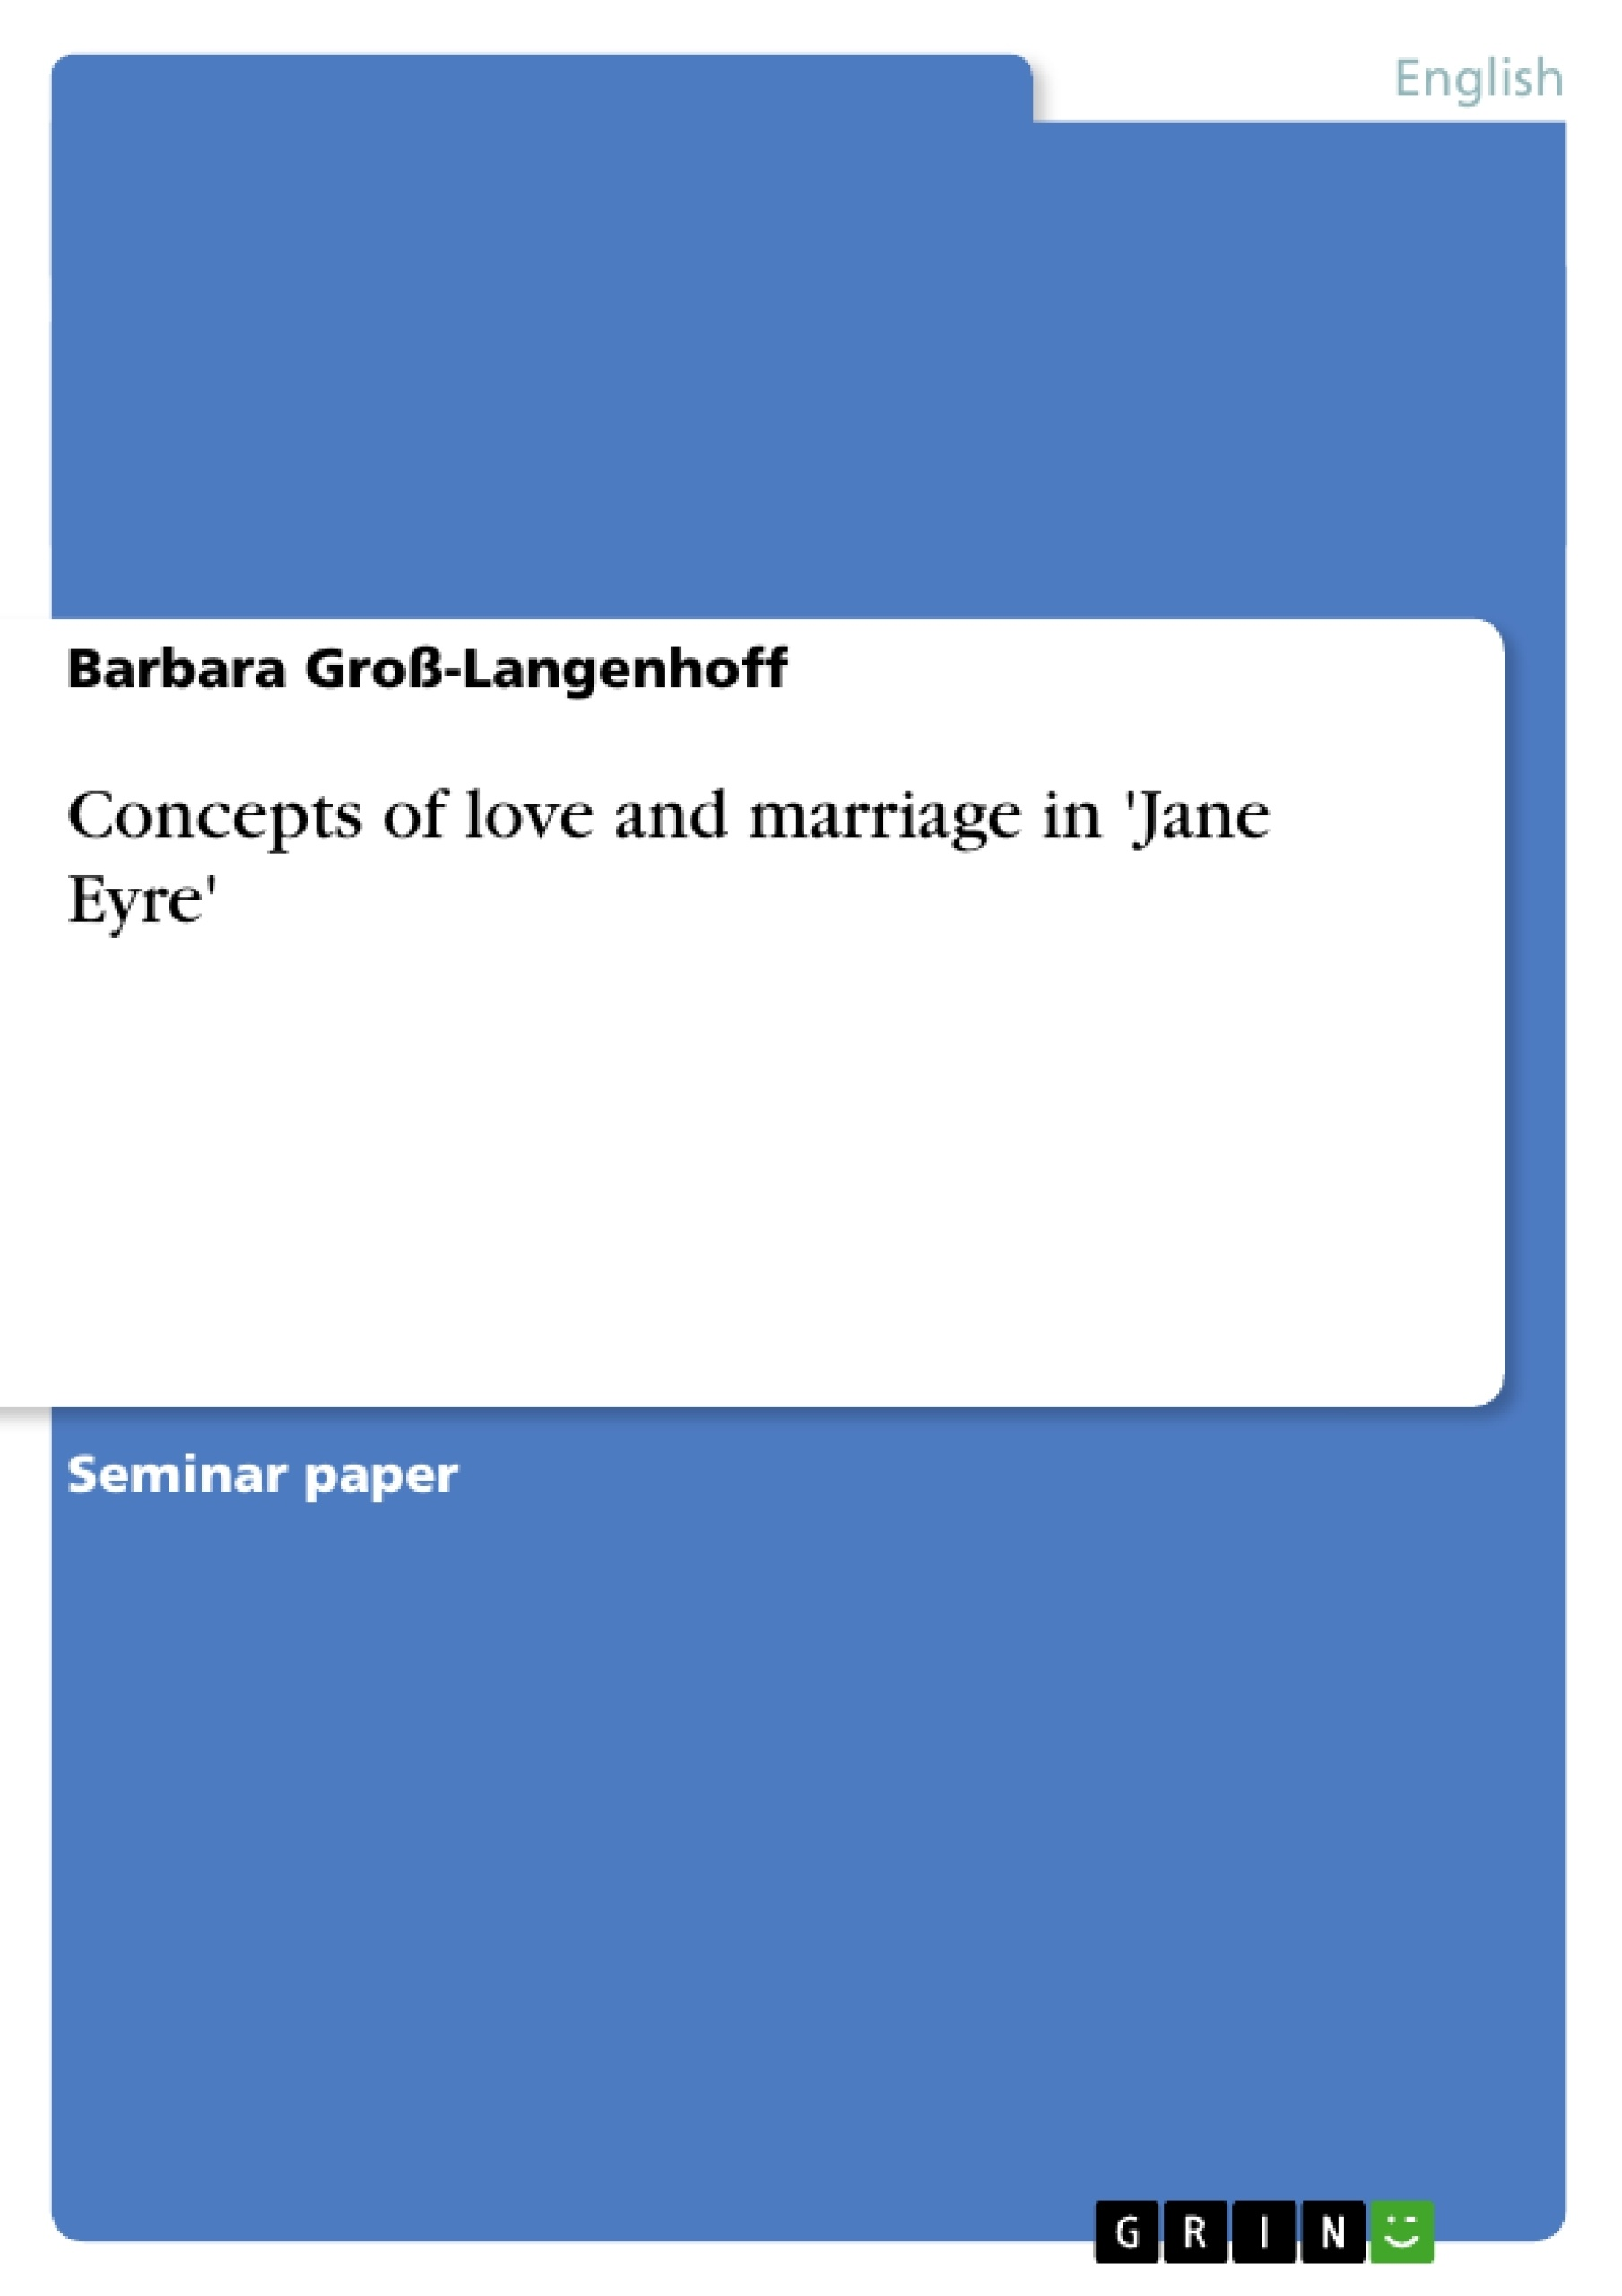 Title: Concepts of love and marriage in 'Jane Eyre'